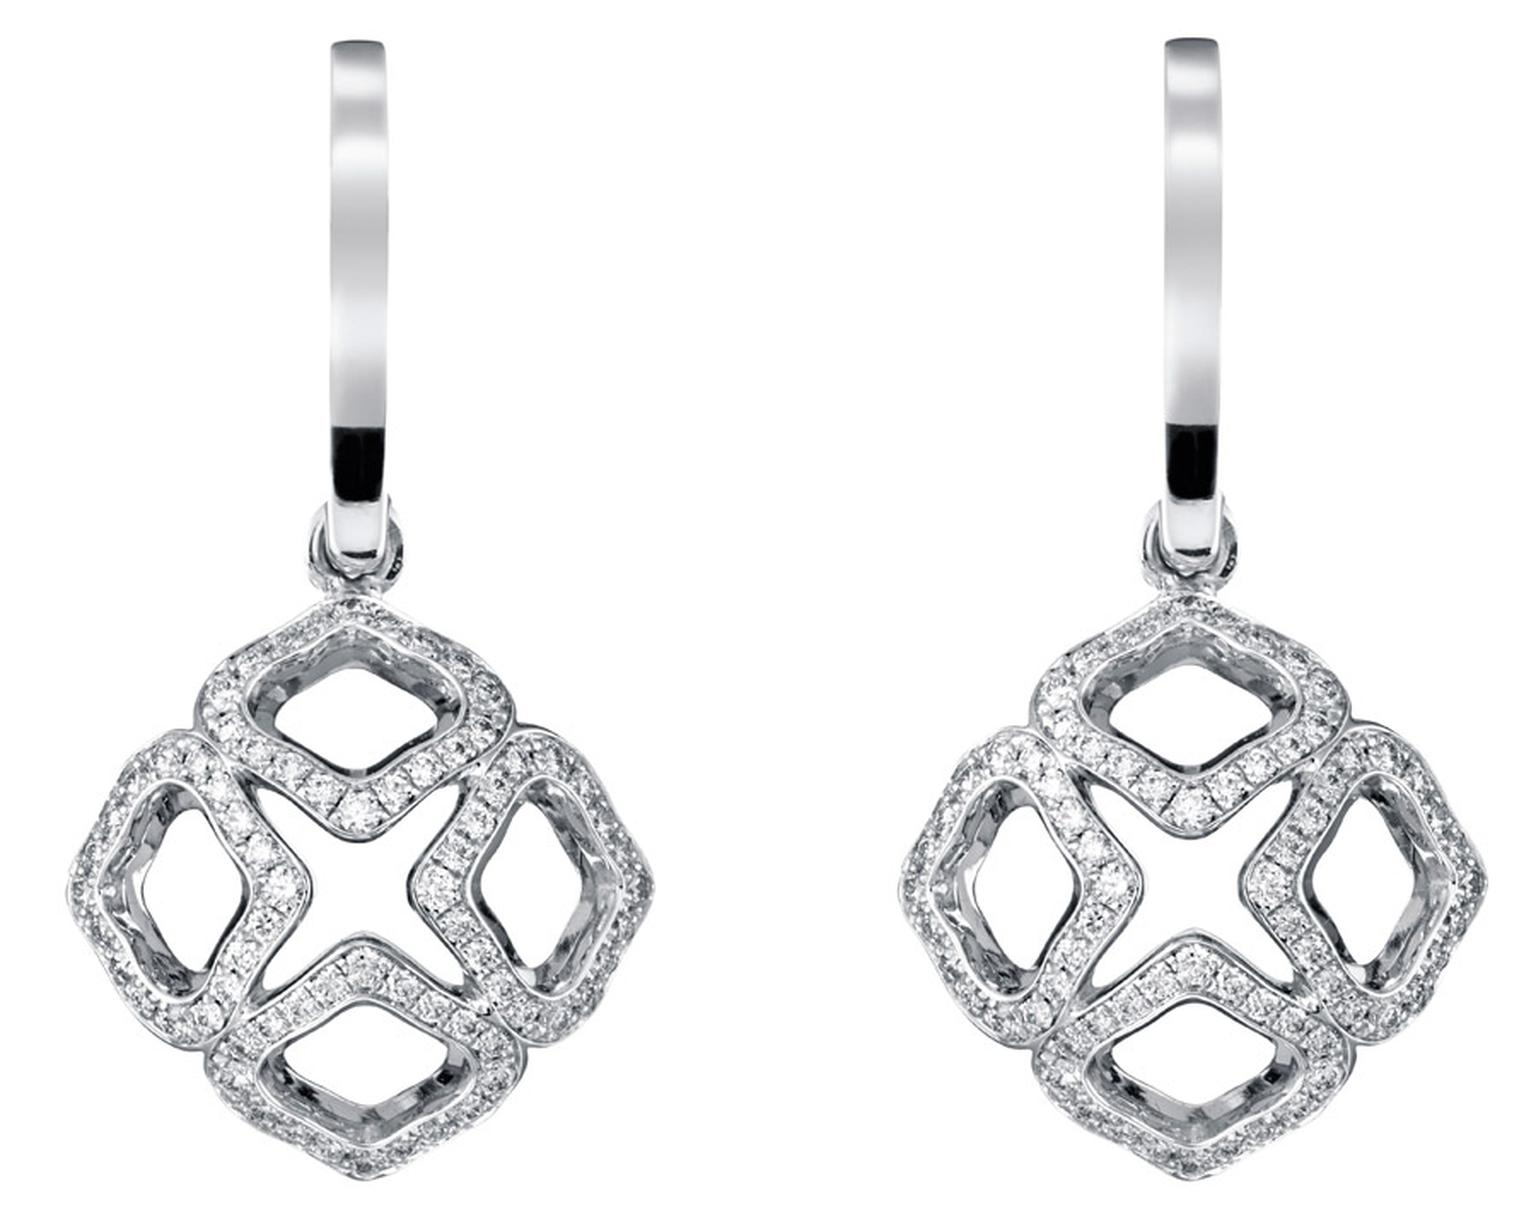 Chopard-Imperiale-earrings2